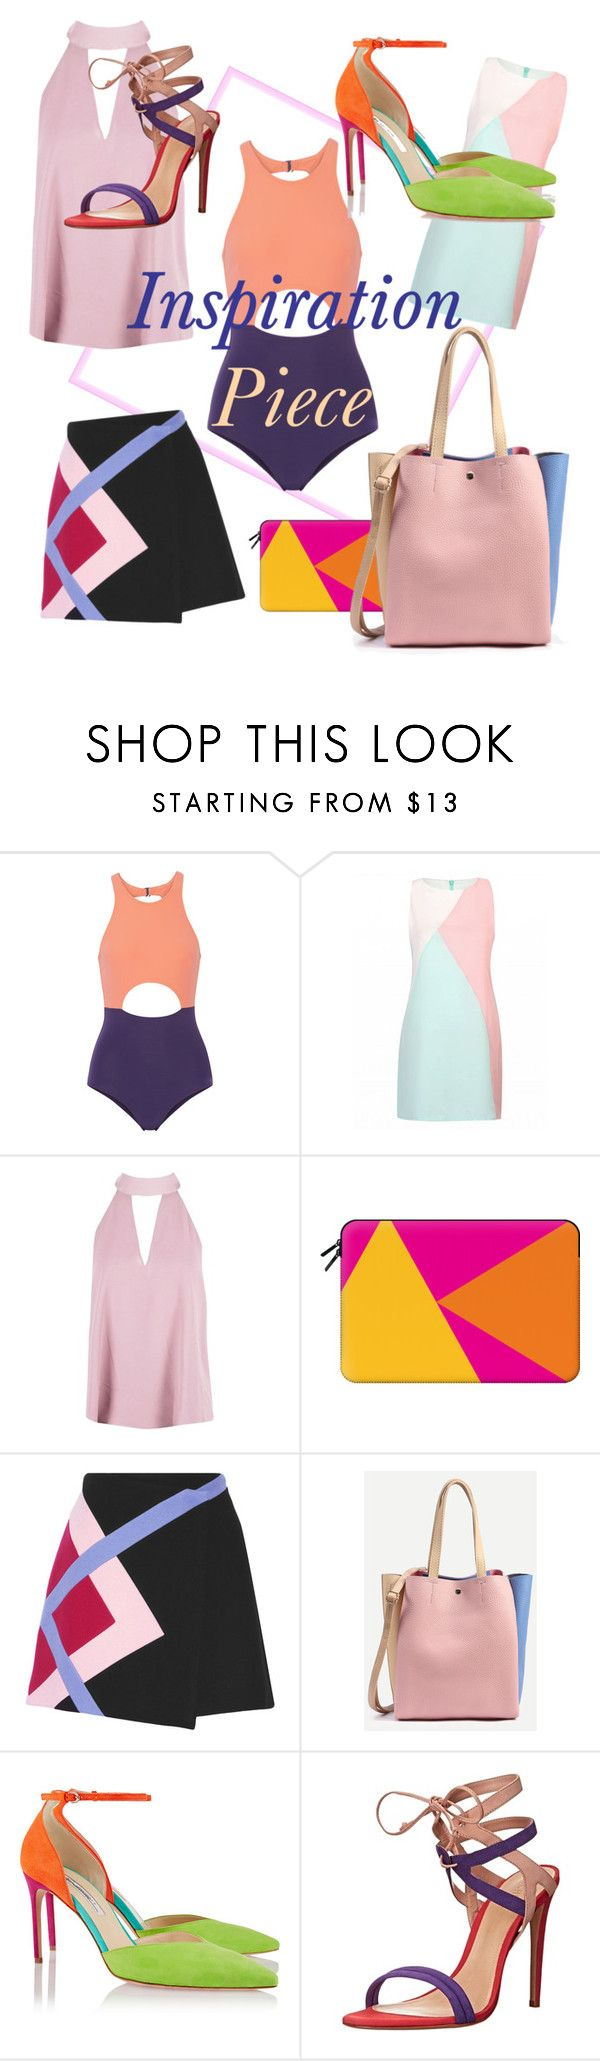 """Inspiration piece block color"" by craftyduoramz ❤ liked on Polyvore featuring Flagpole, Boohoo, Casetify, MSGM, Brian Atwood and Schutz"